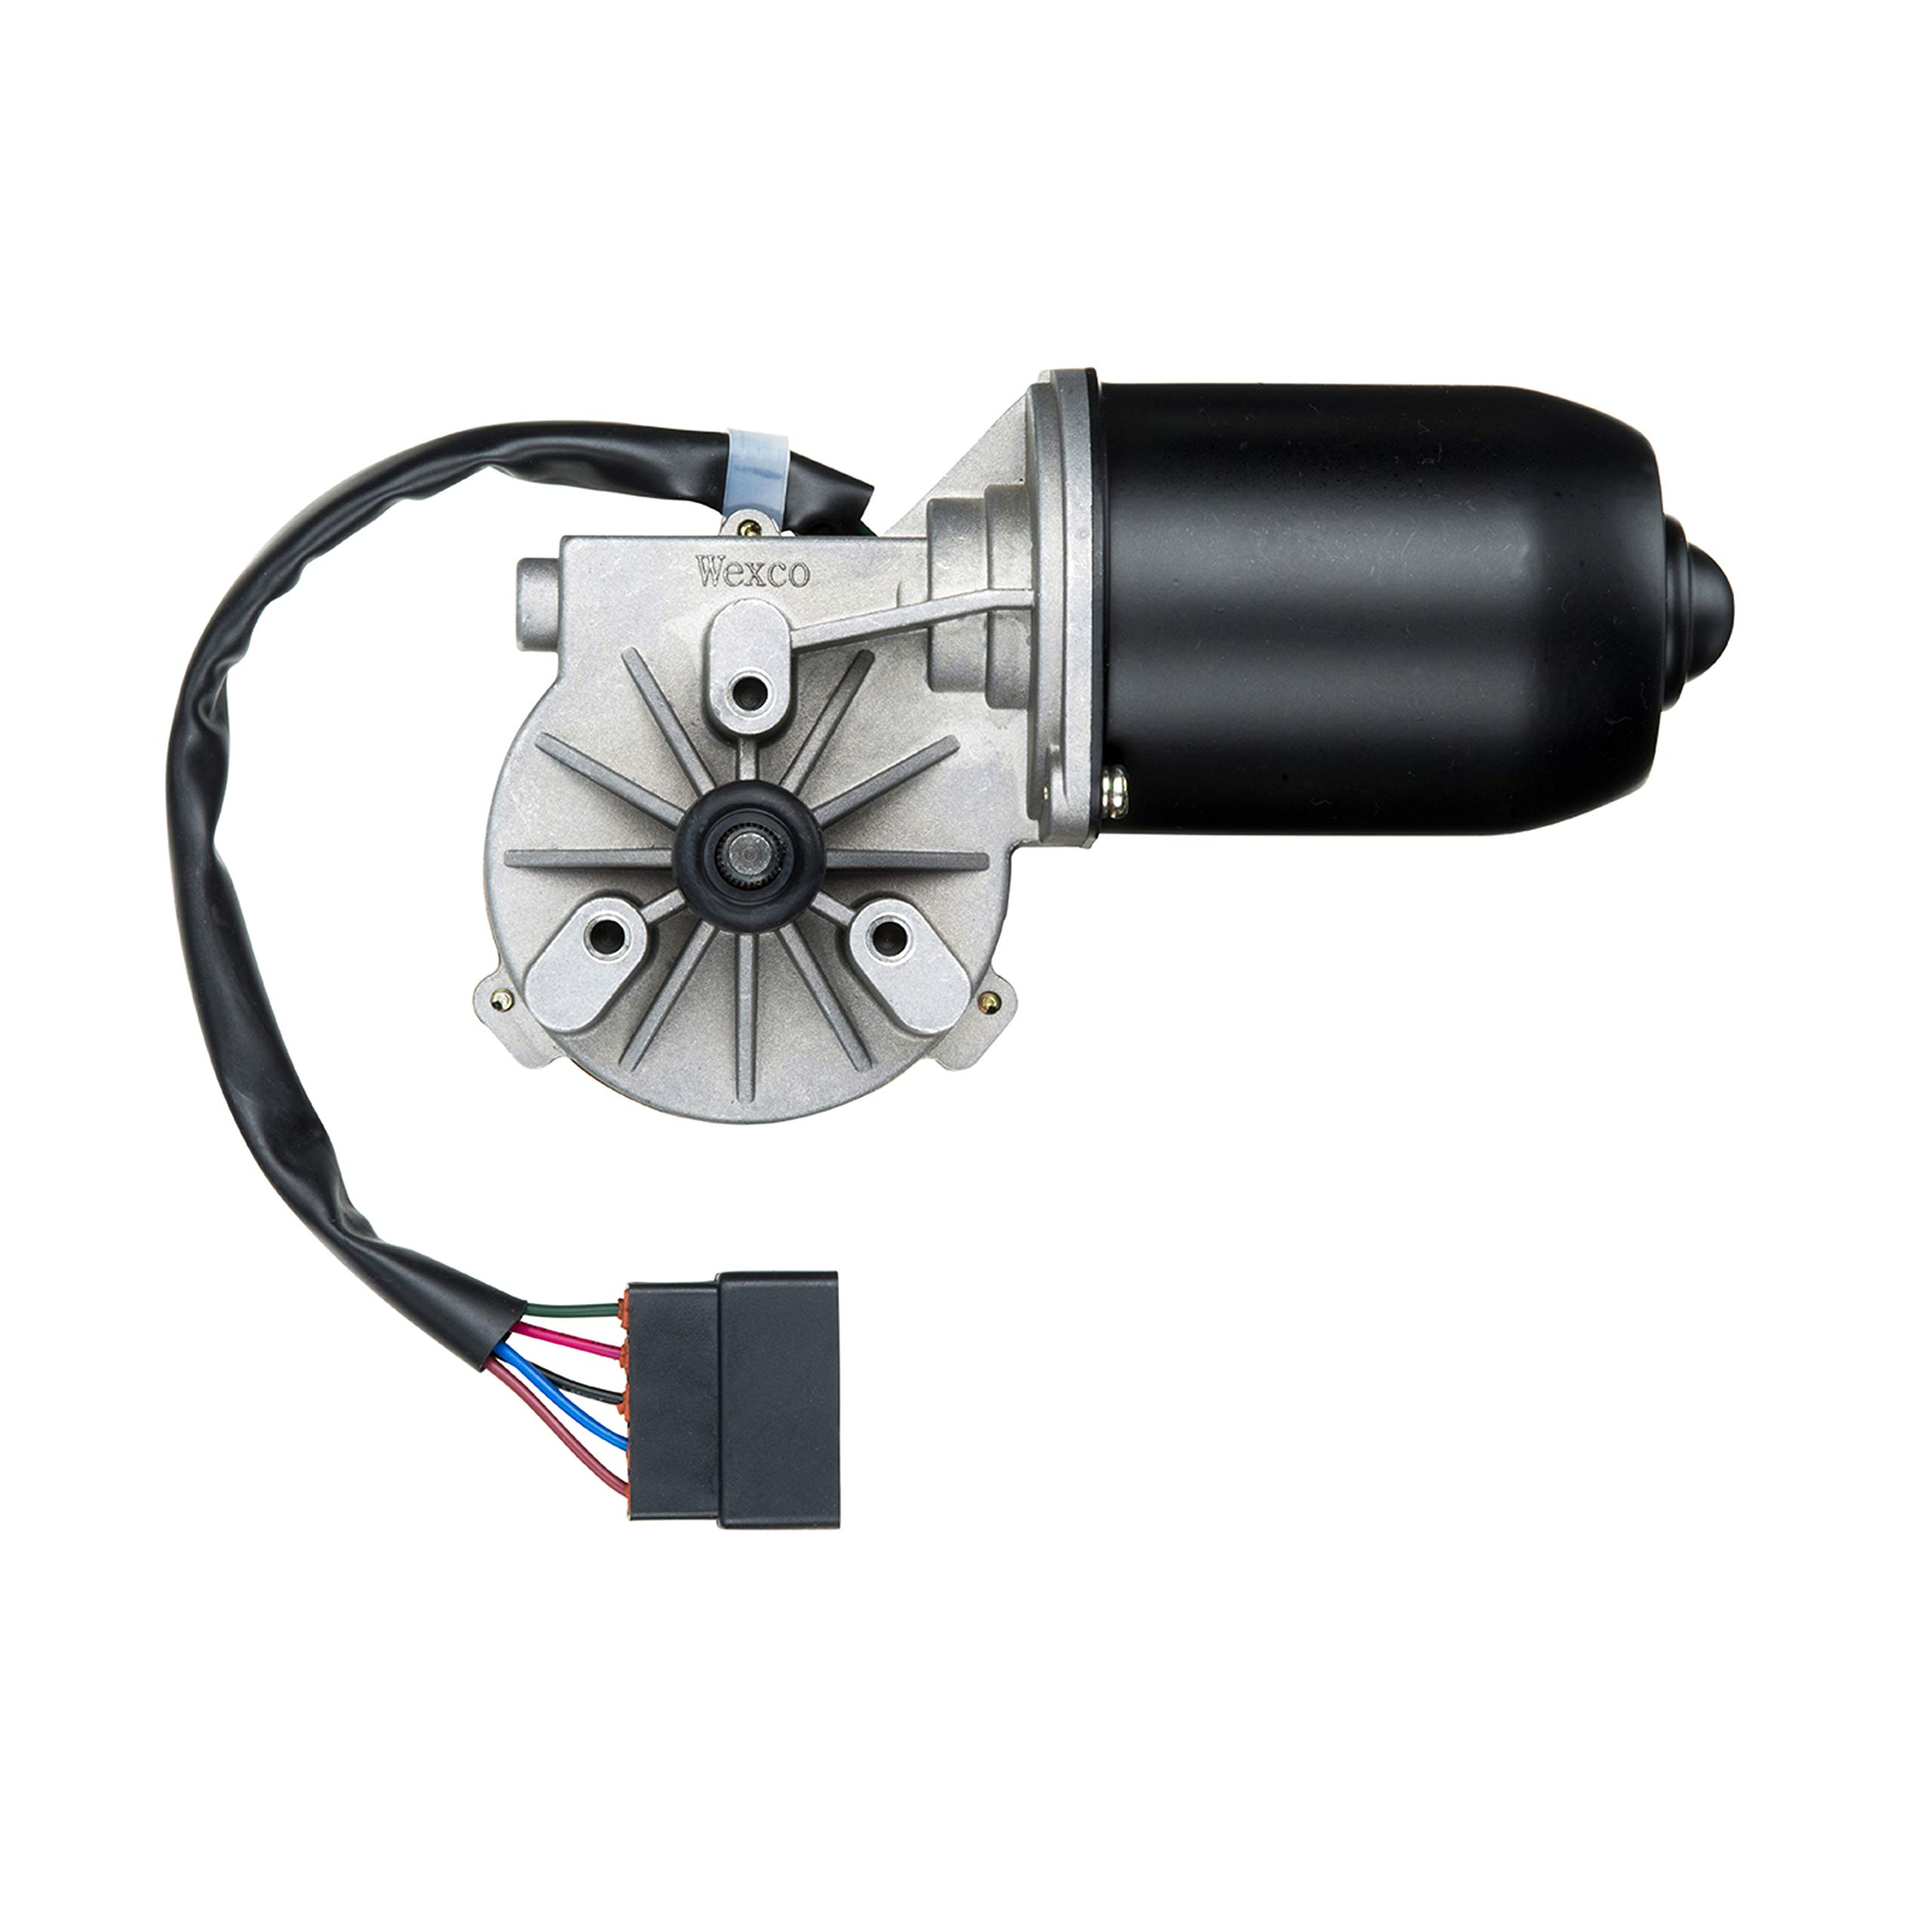 AutoTex Compatible with/Replacement for 2001-2008 TRAVEL SUPREME/ENTEGRA BY JAYCO Travel Select Class A Recreational Vehicle (RV) Windshield Wiper Motor - D103 - Wexco Industries by AutoTex